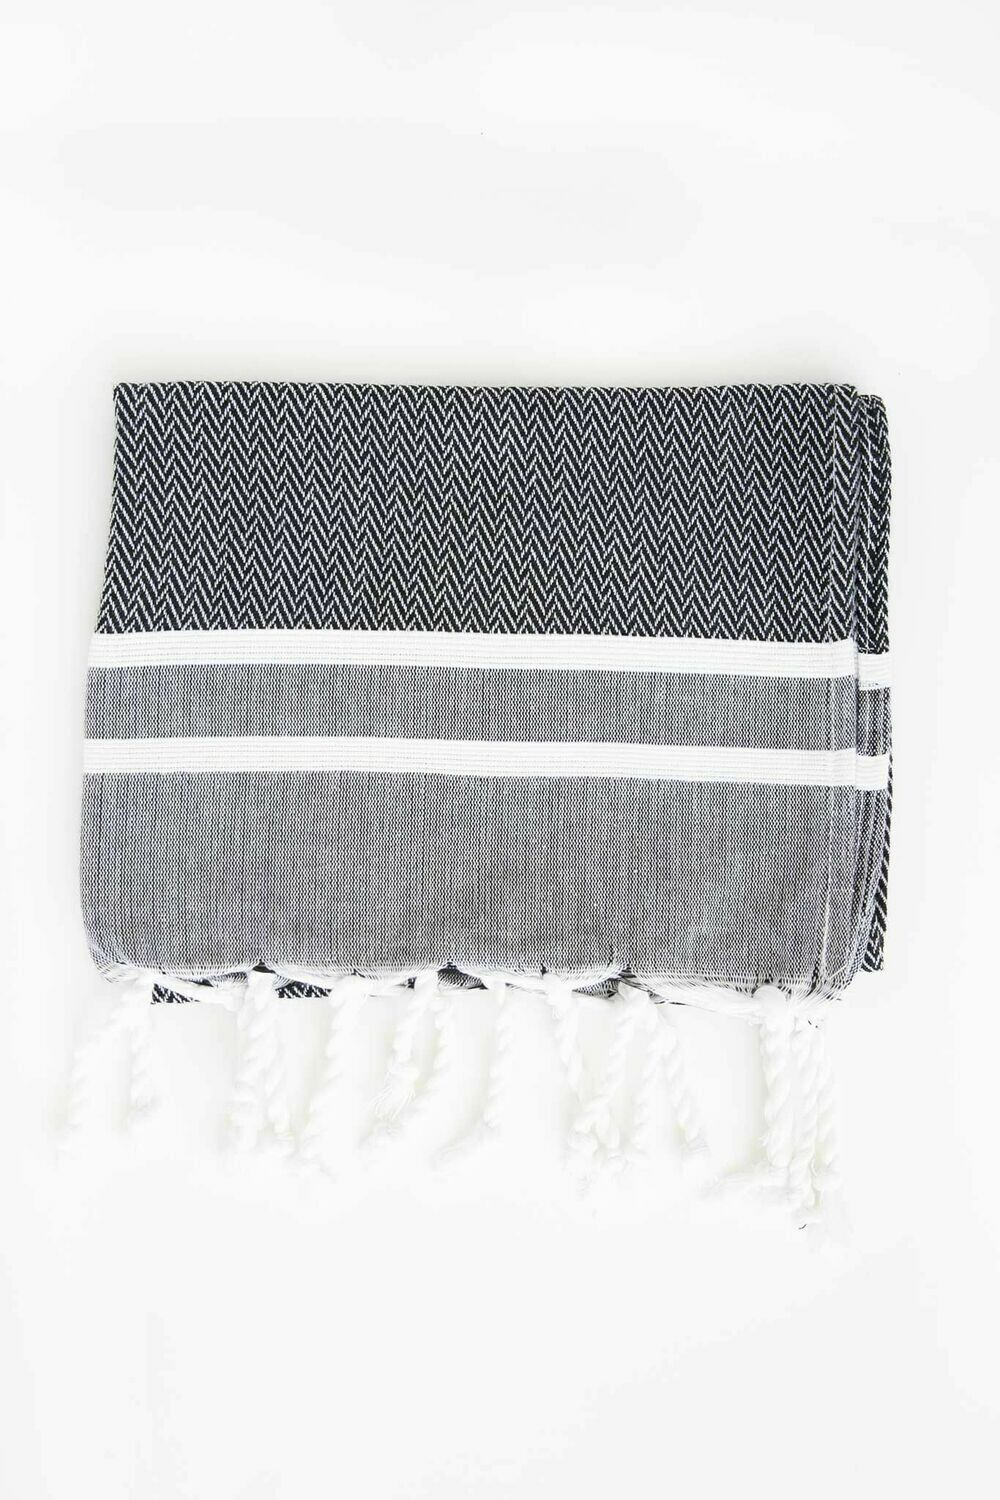 SL013 Guest Towel Black + White Stripes Chevron